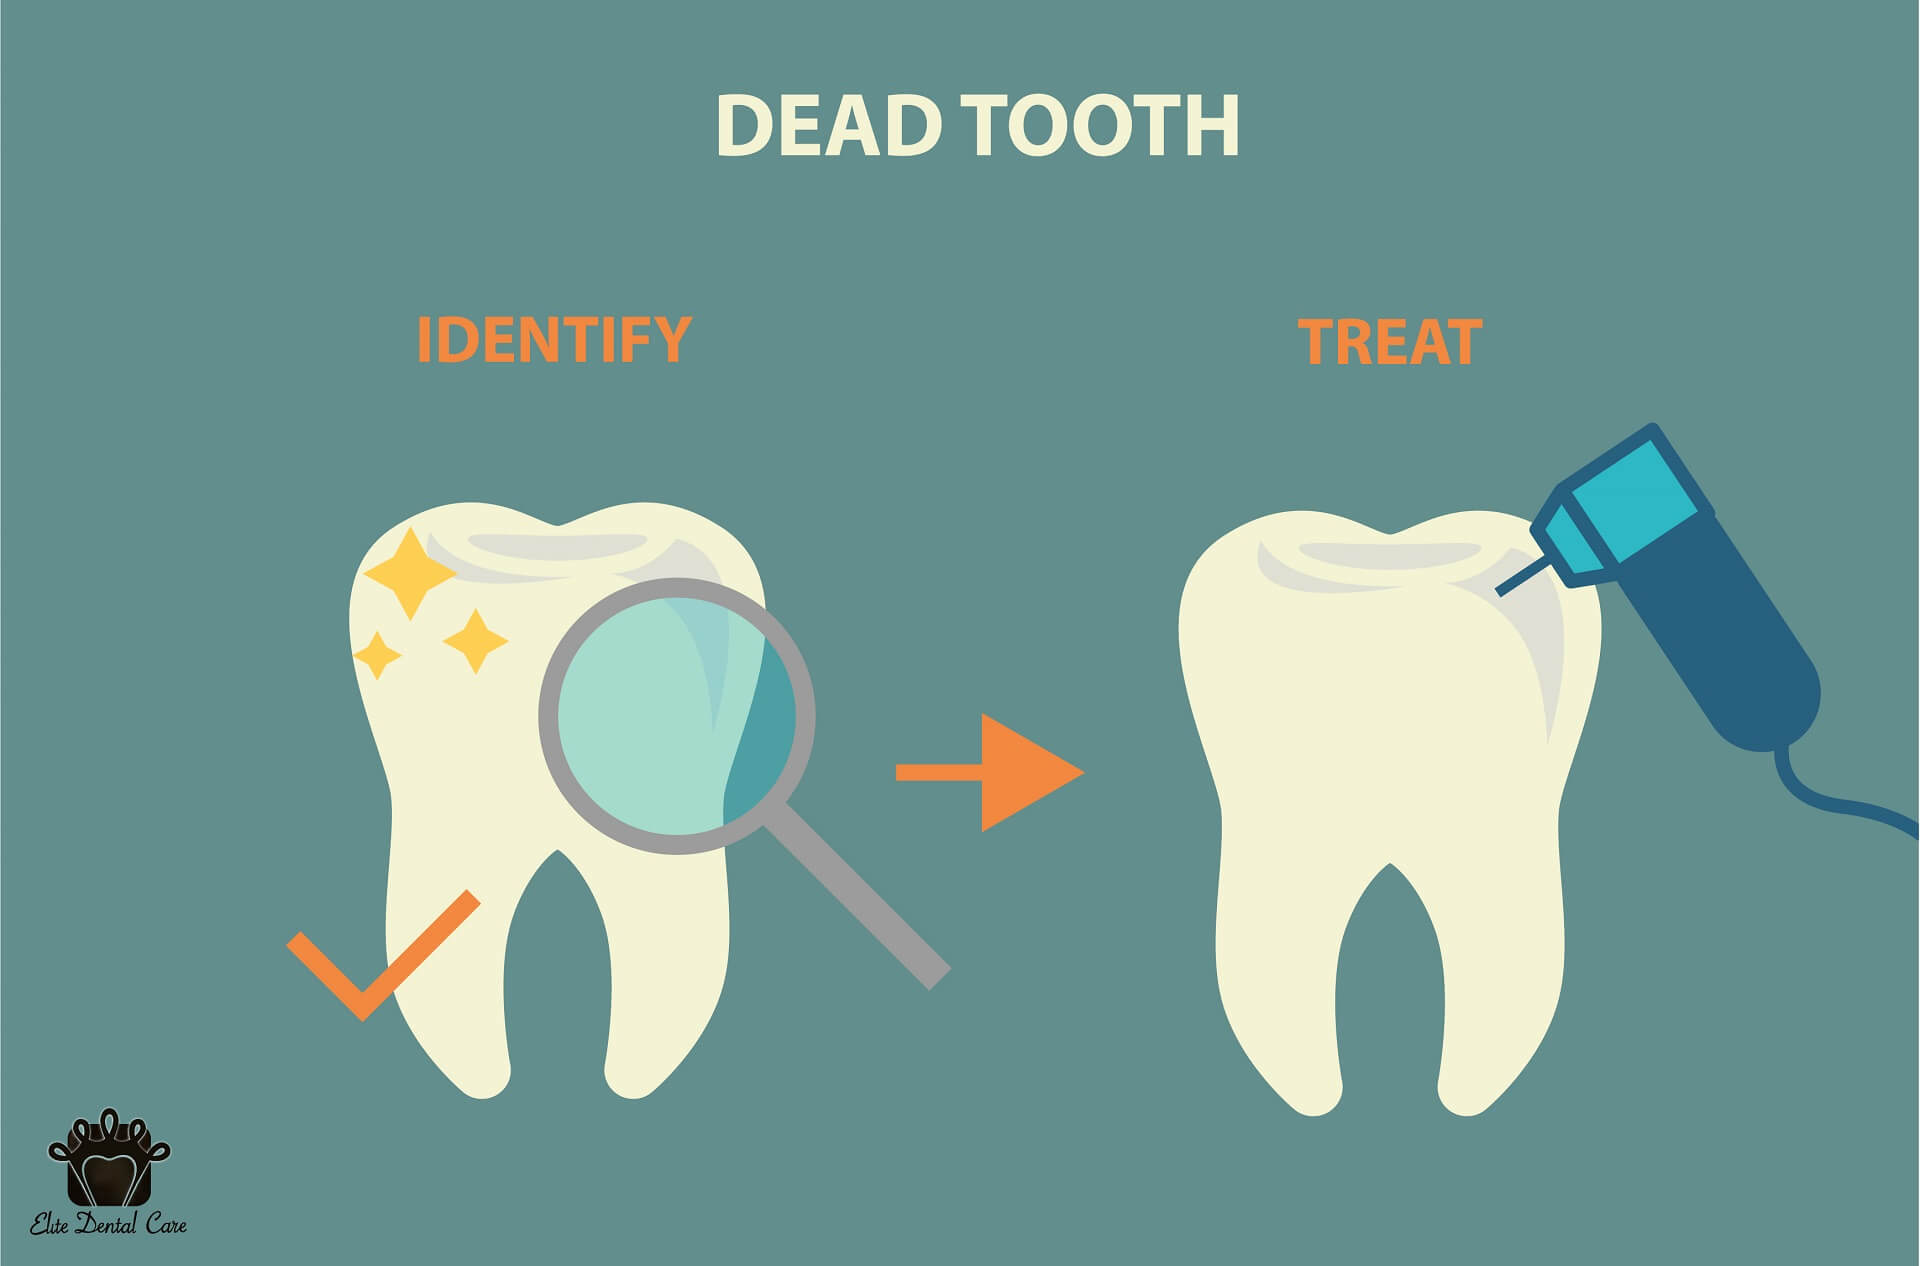 Best ways to Identify and Prevent the Dead Tooth